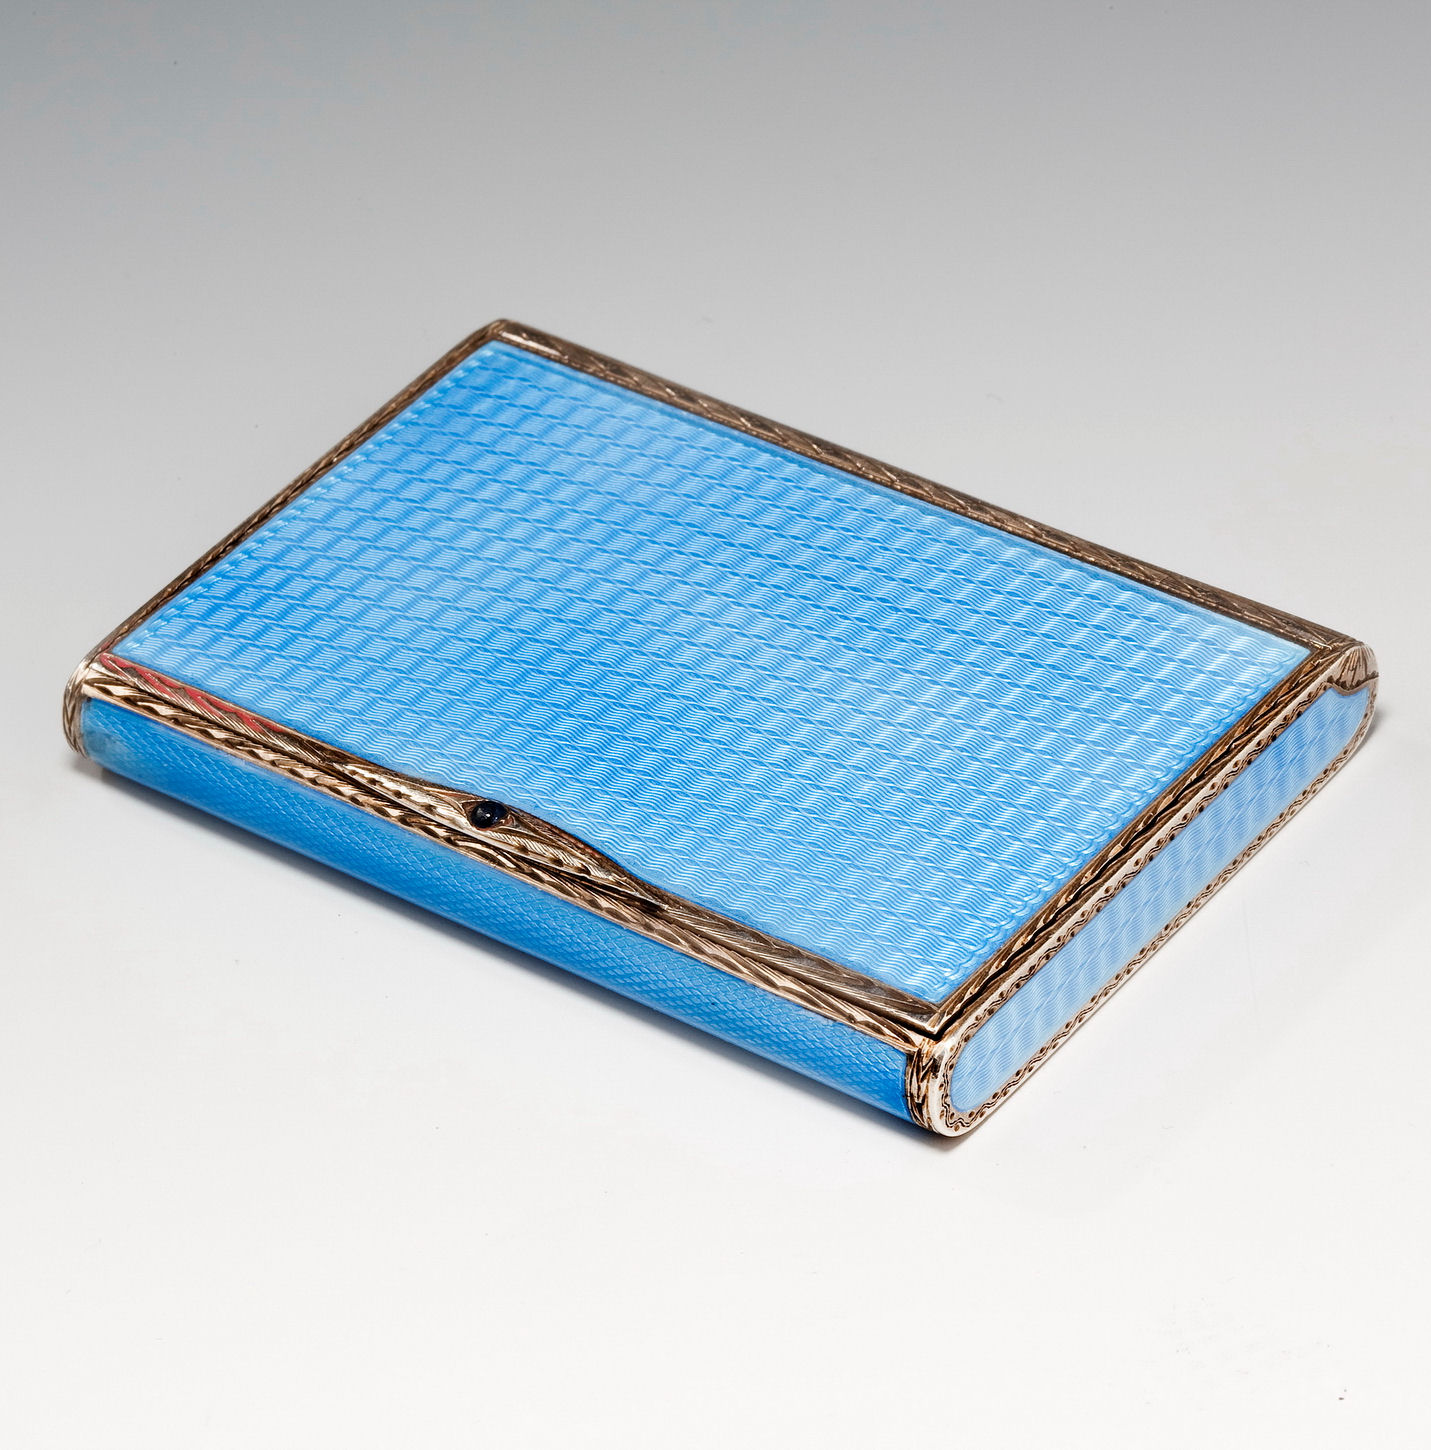 ANTIQUE ENAMEL AND SILVER CARD CASE